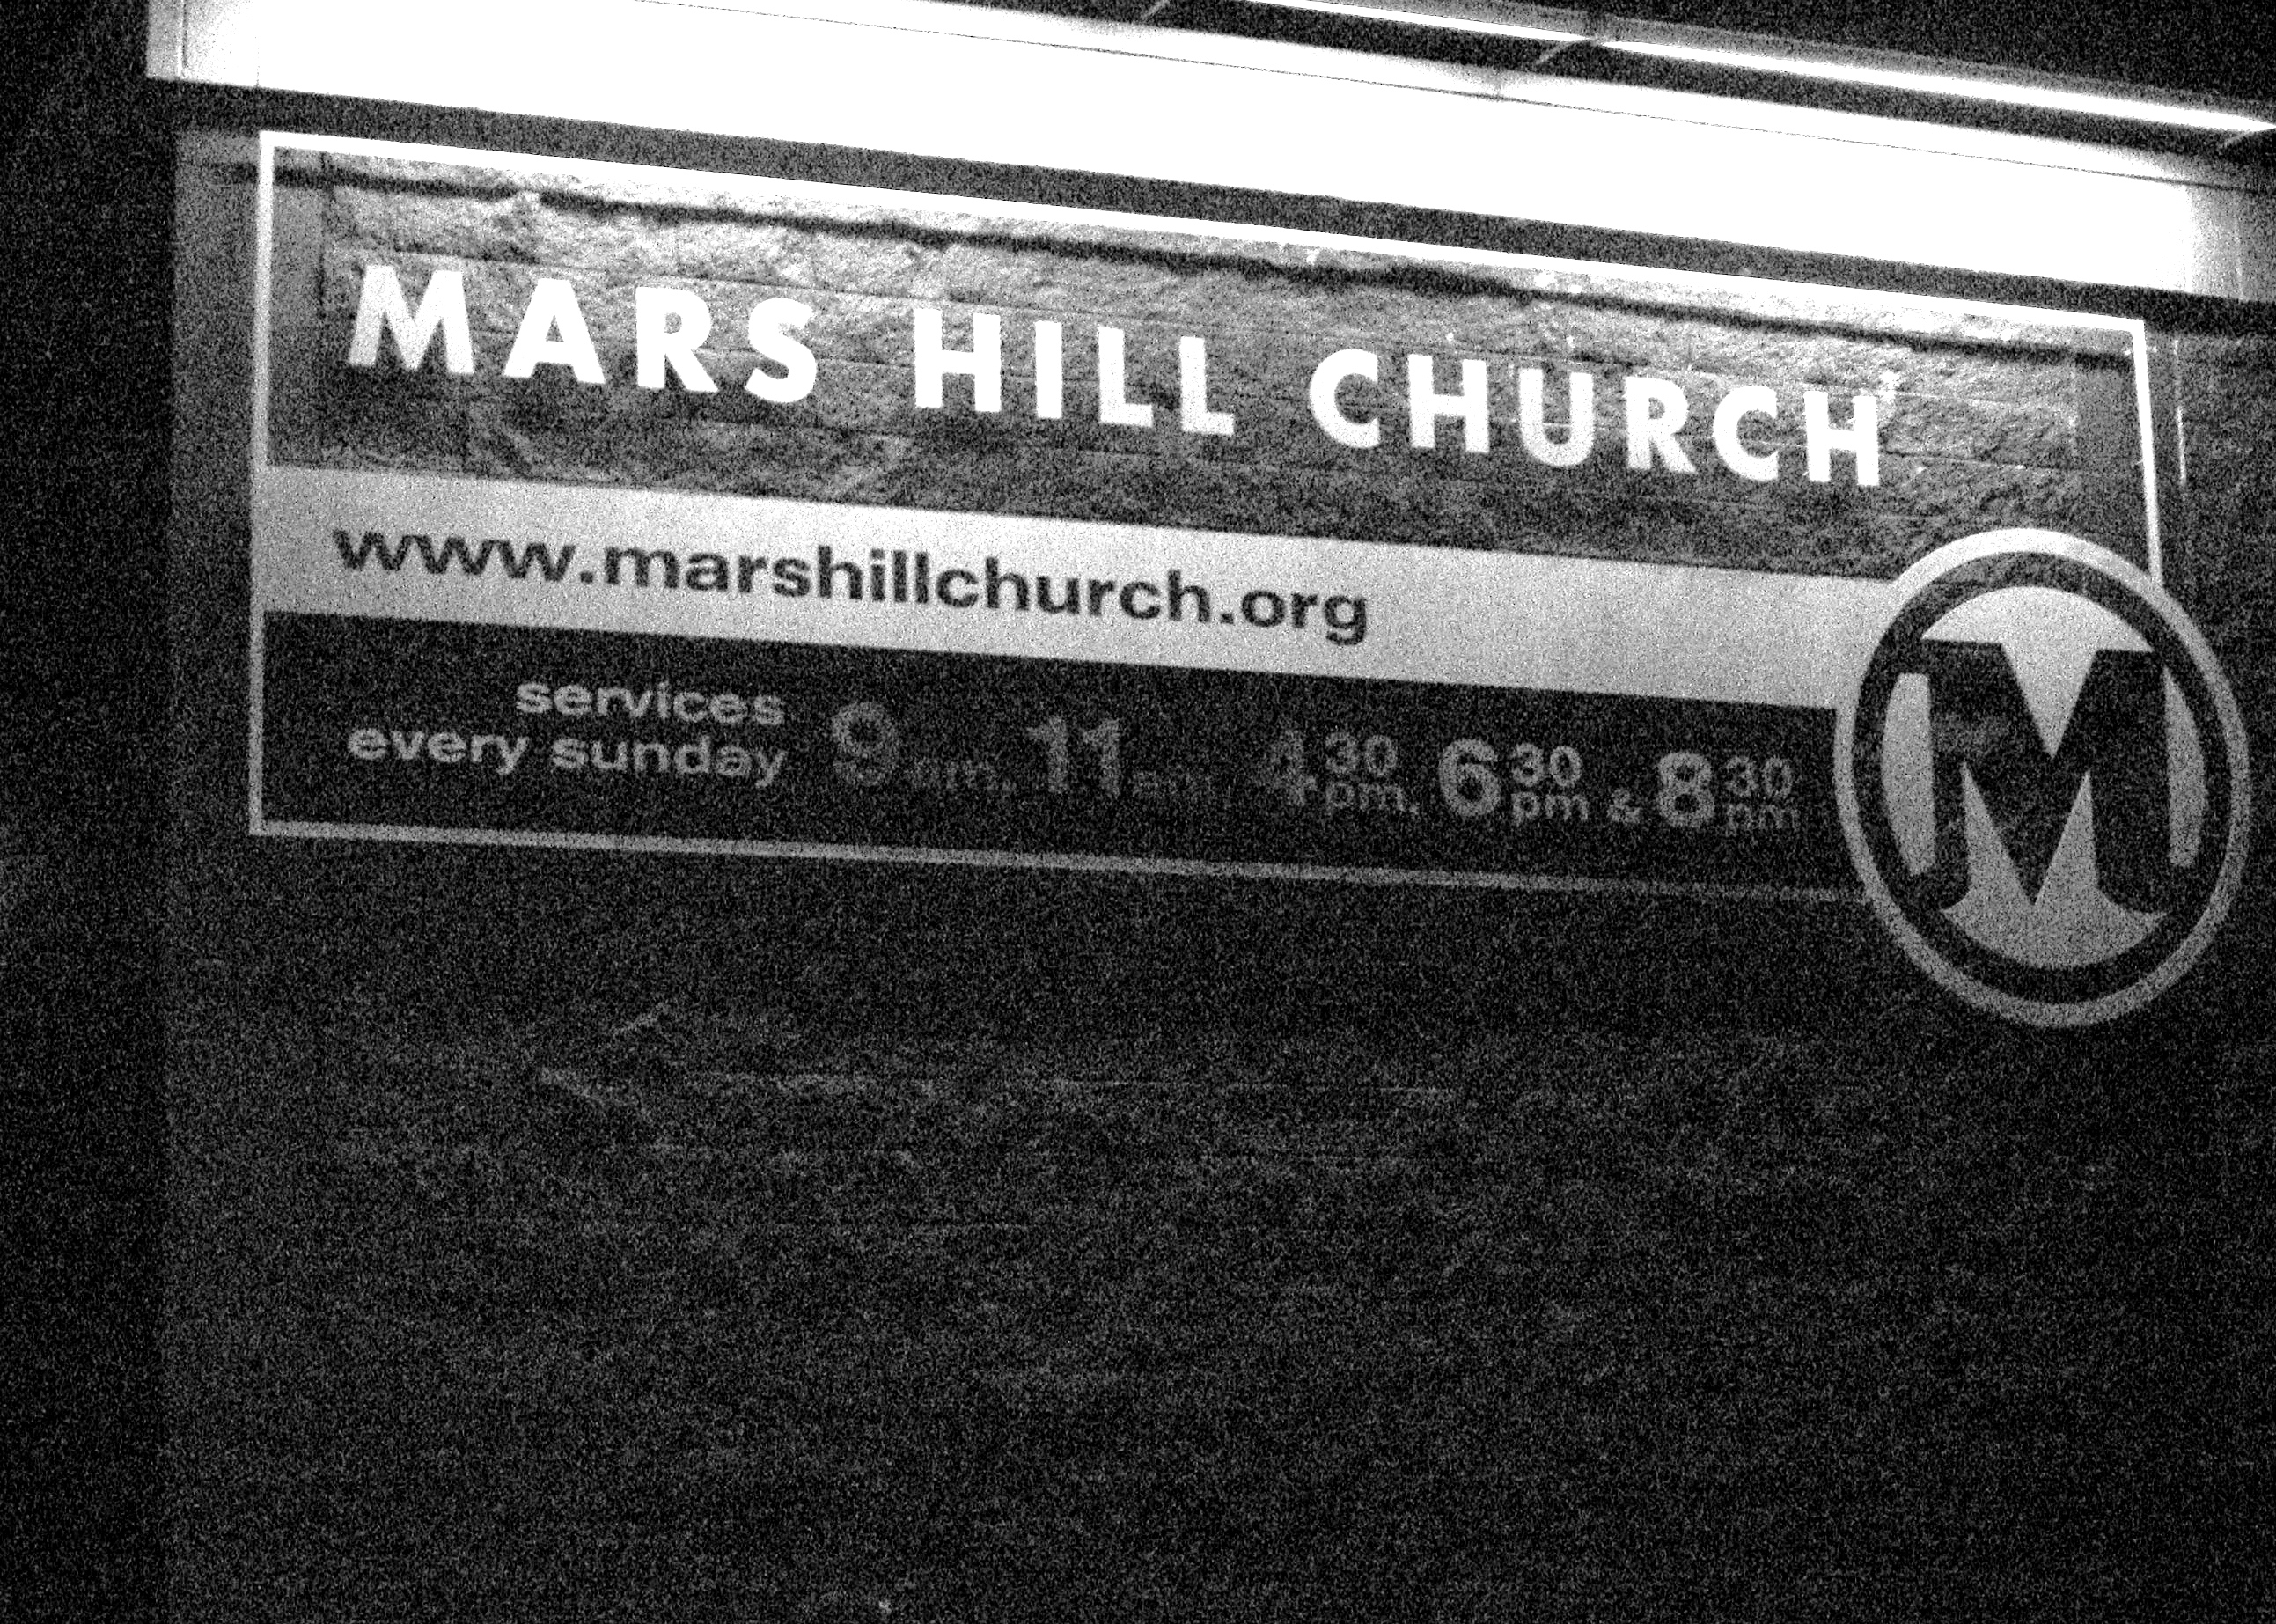 mars hill religion saves dating Religion saves: and nine other misconceptions online votes on the mars hill church devoted to the misconception that religion is what saves us.